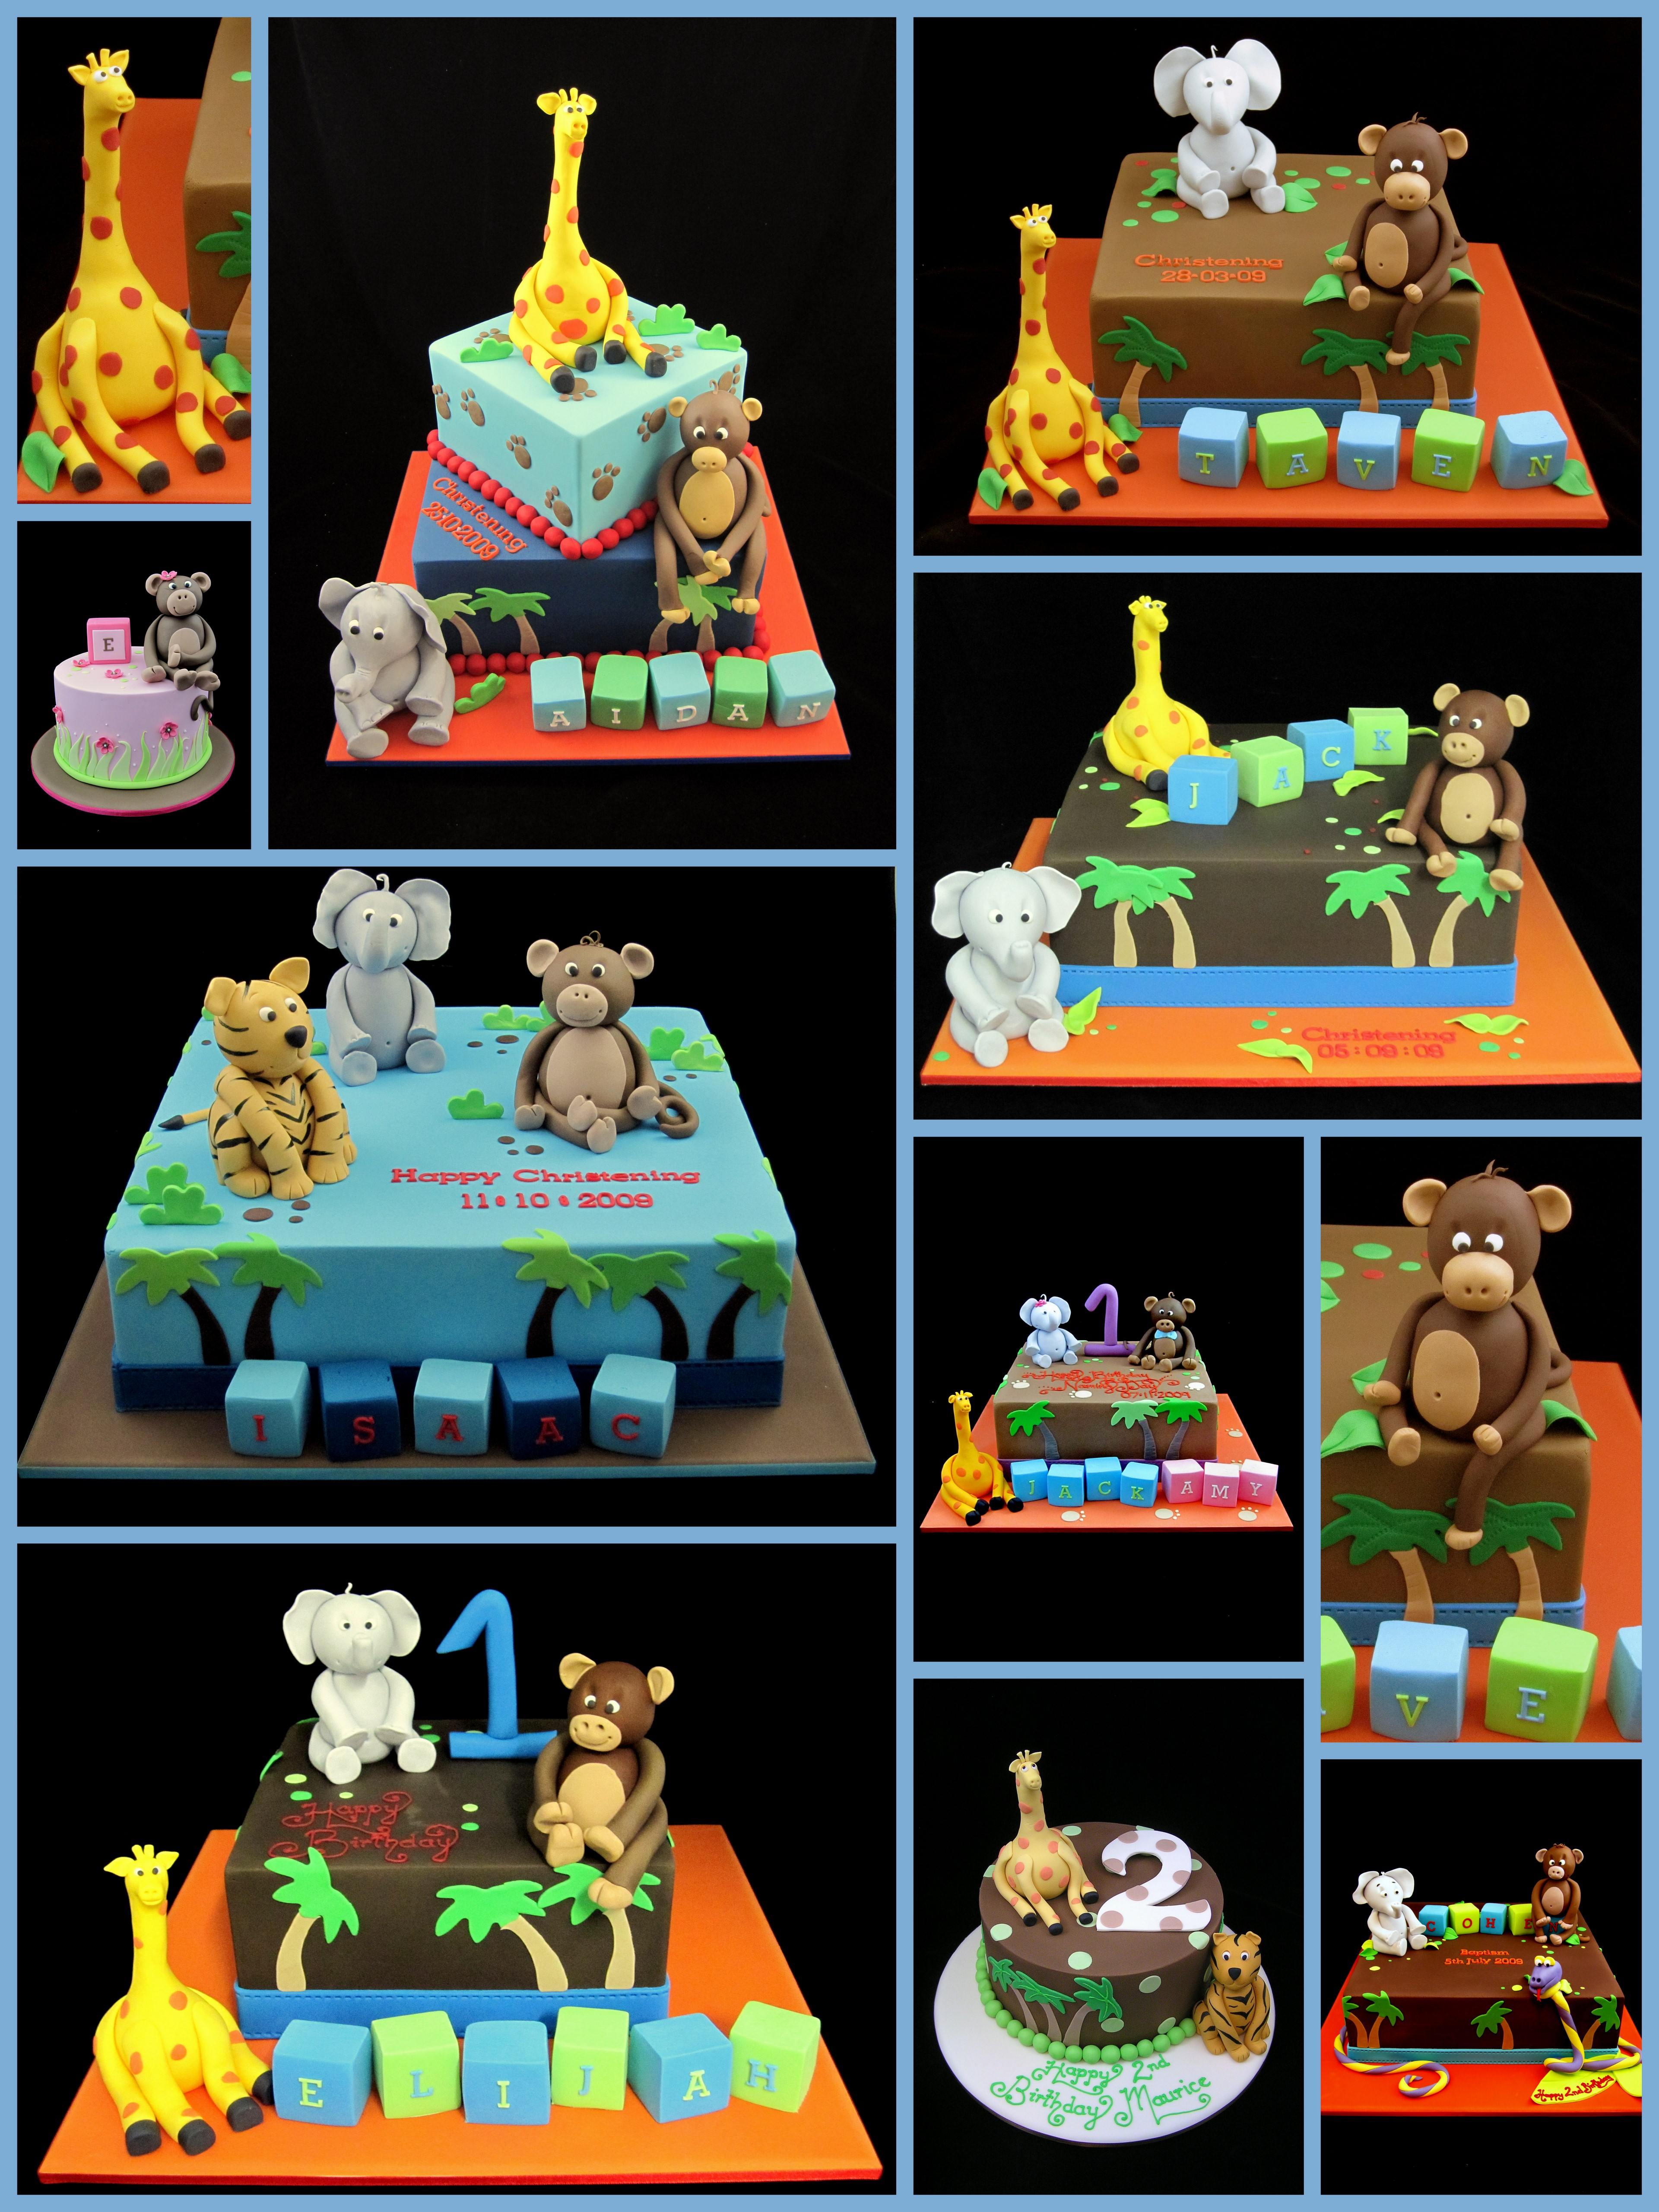 fondant ideas for cake decorating.